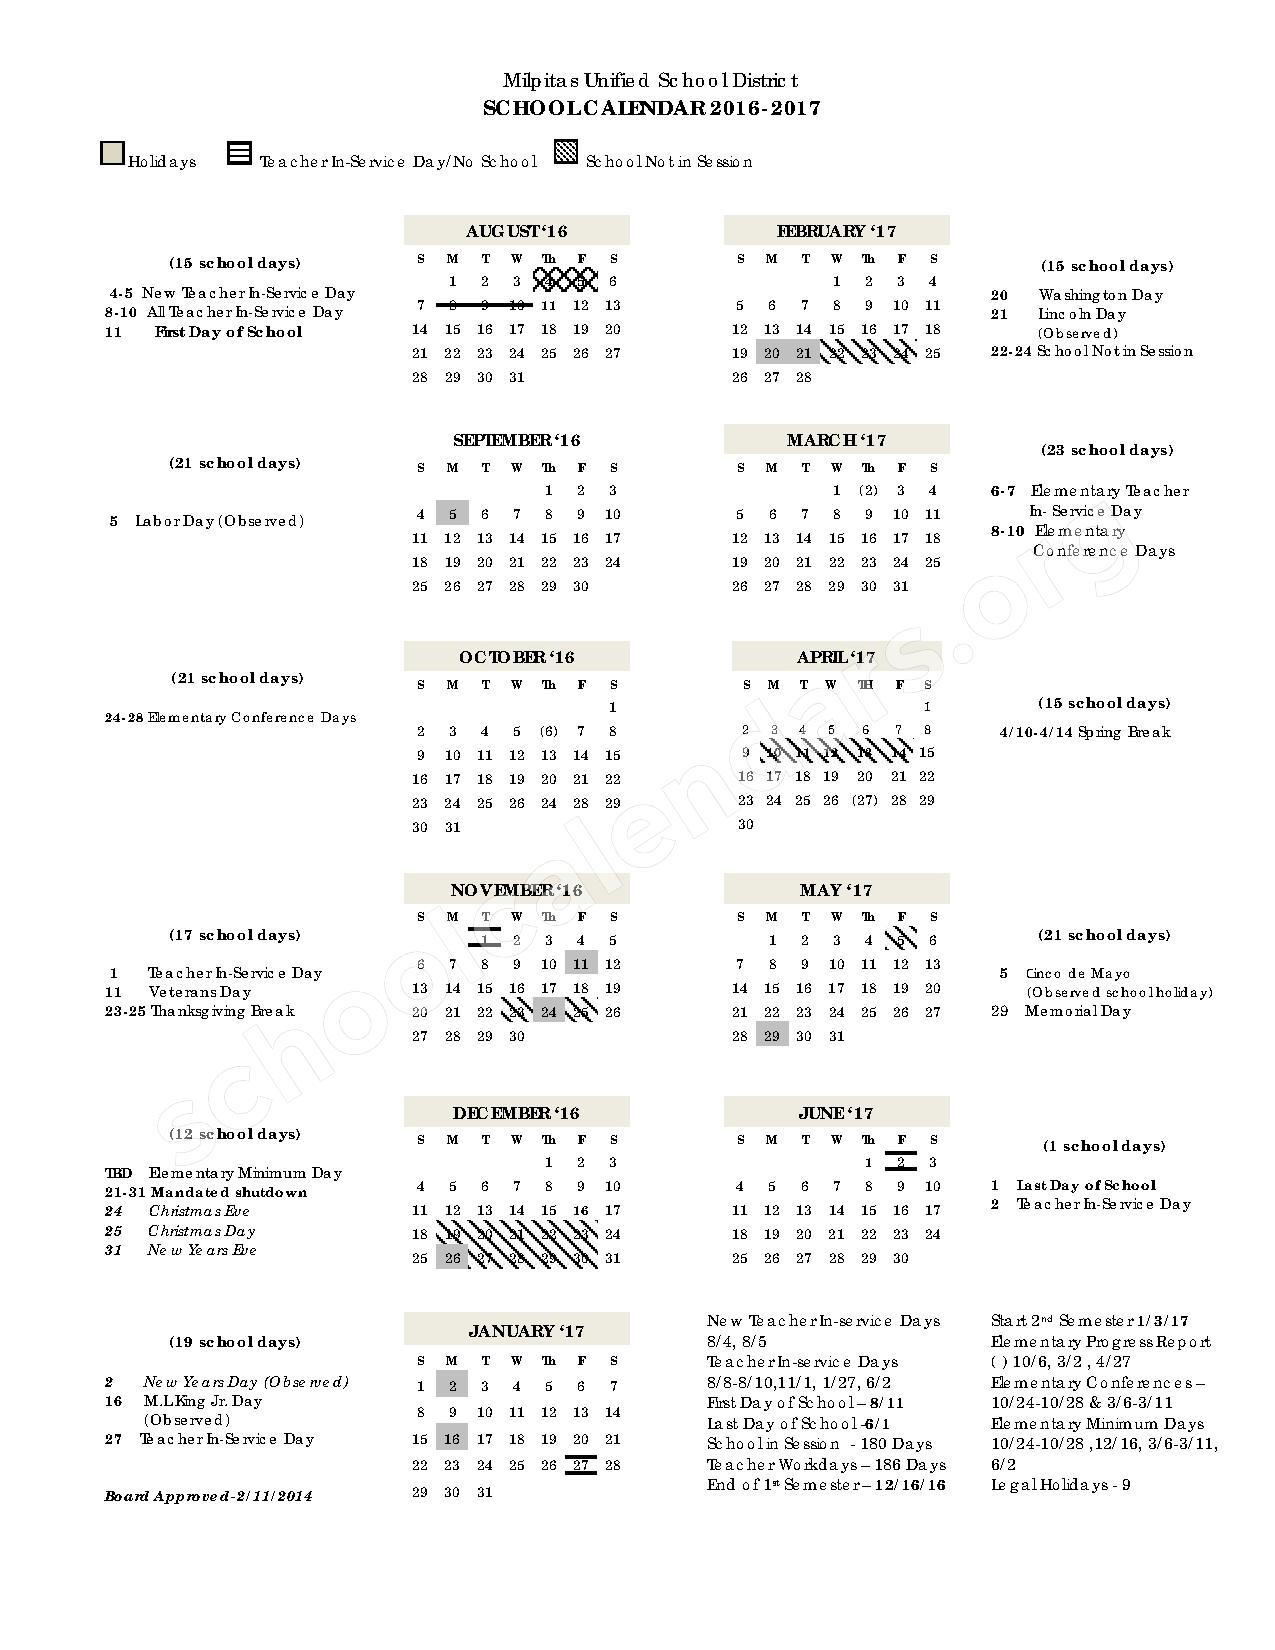 2016 - 2017 School Calendar – Milpitas Unified School District – page 1